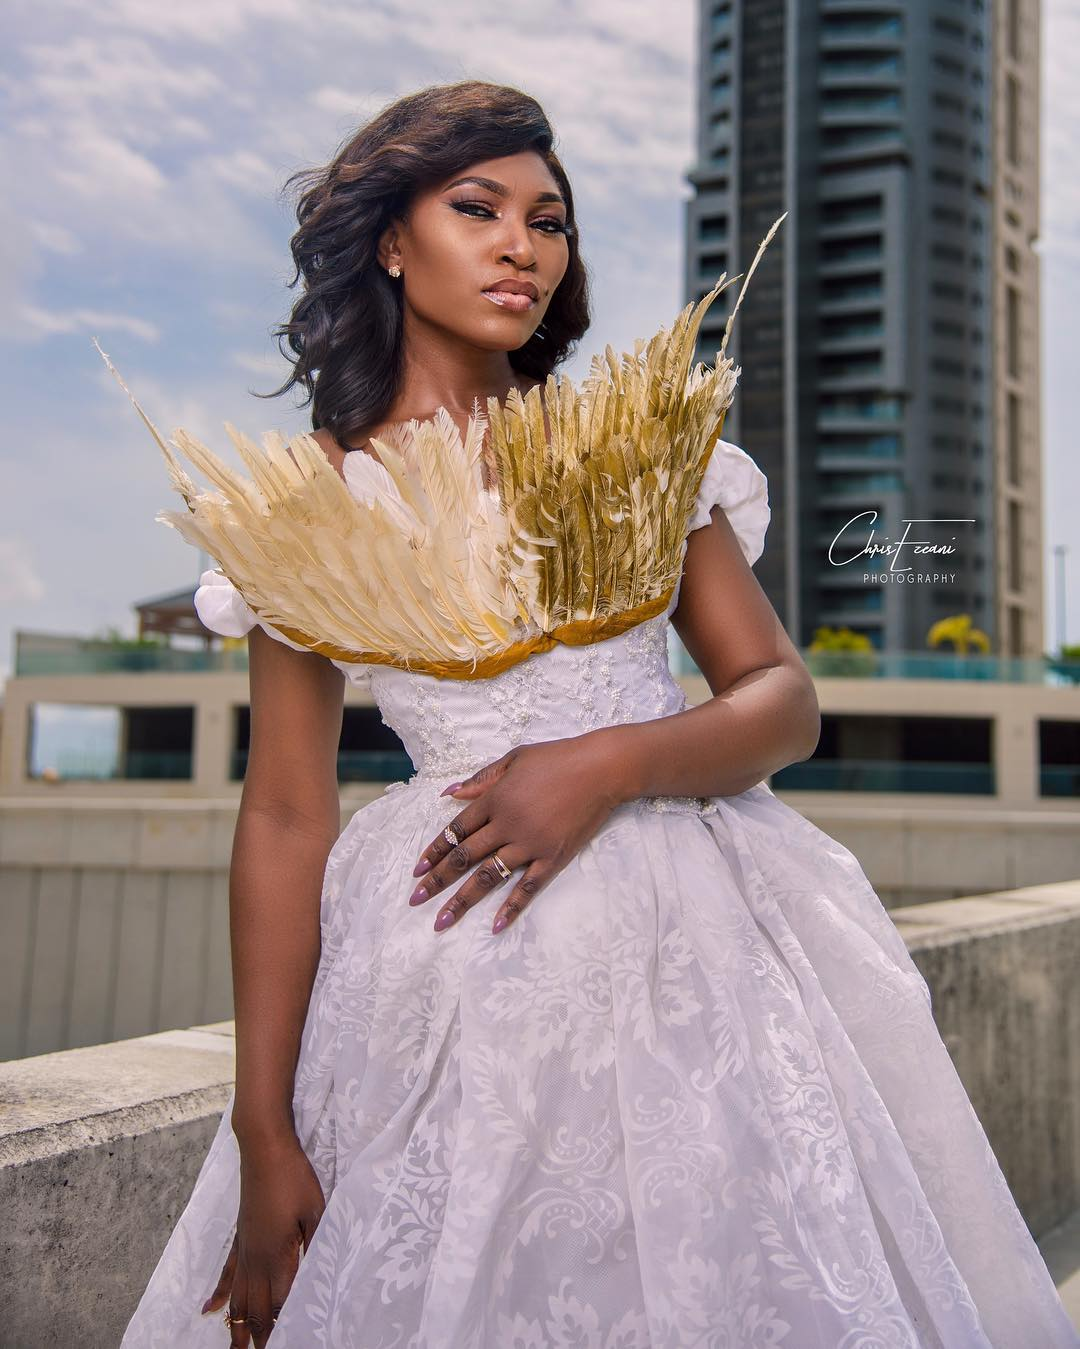 [PHOTOS] Ufuoma McDermott Releases Game of Thrones Inspired Birthday Photos